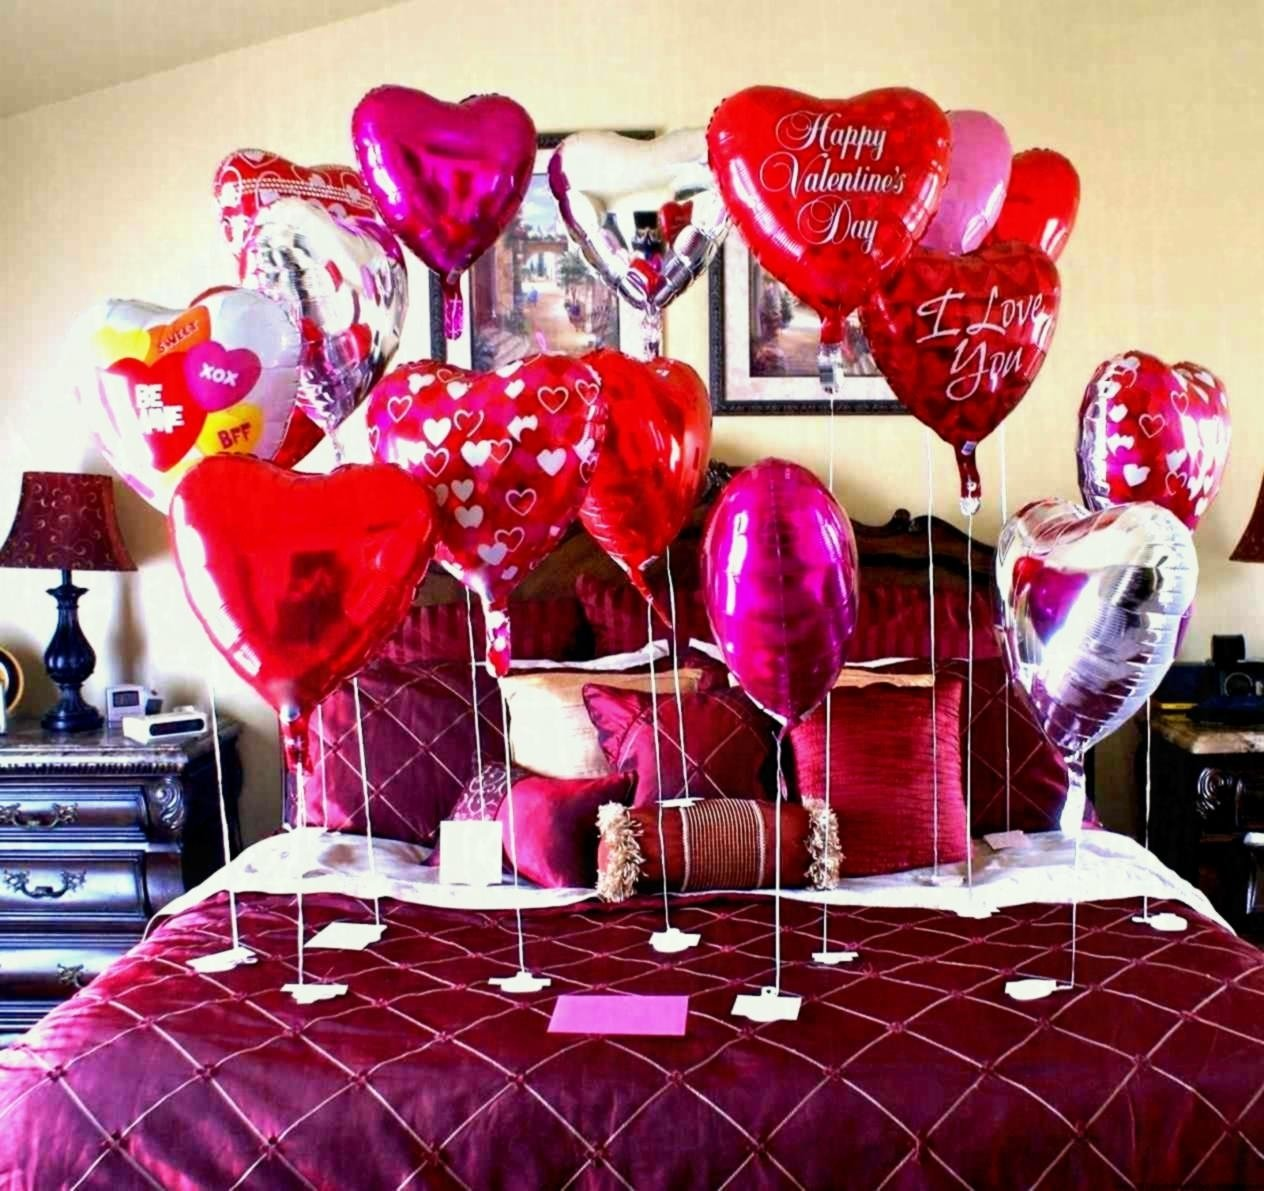 10 Most Recommended Romantic Ideas For Boyfriends Birthday ideas for boyfriend birthday gift lifee pinterest five him in the